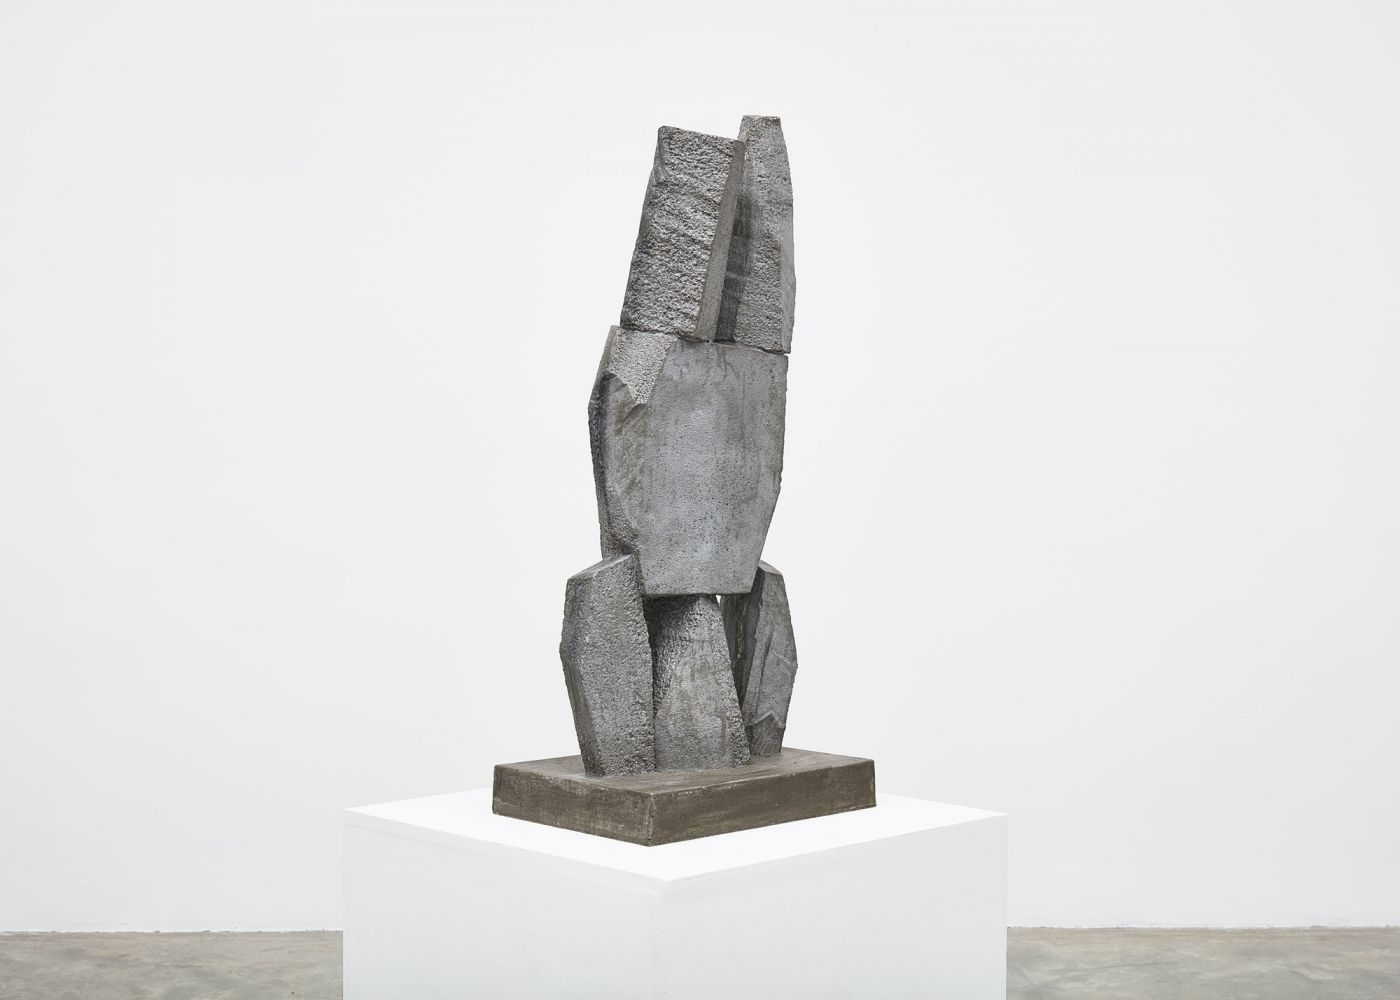 Gimhongsok (b. 1964) Resist - Ho, 2018 High-strength grout cement 36.42 x 15.75 x 11.81 inches 92.5 x 40 x 30 cm Edition 1/3, 2AP